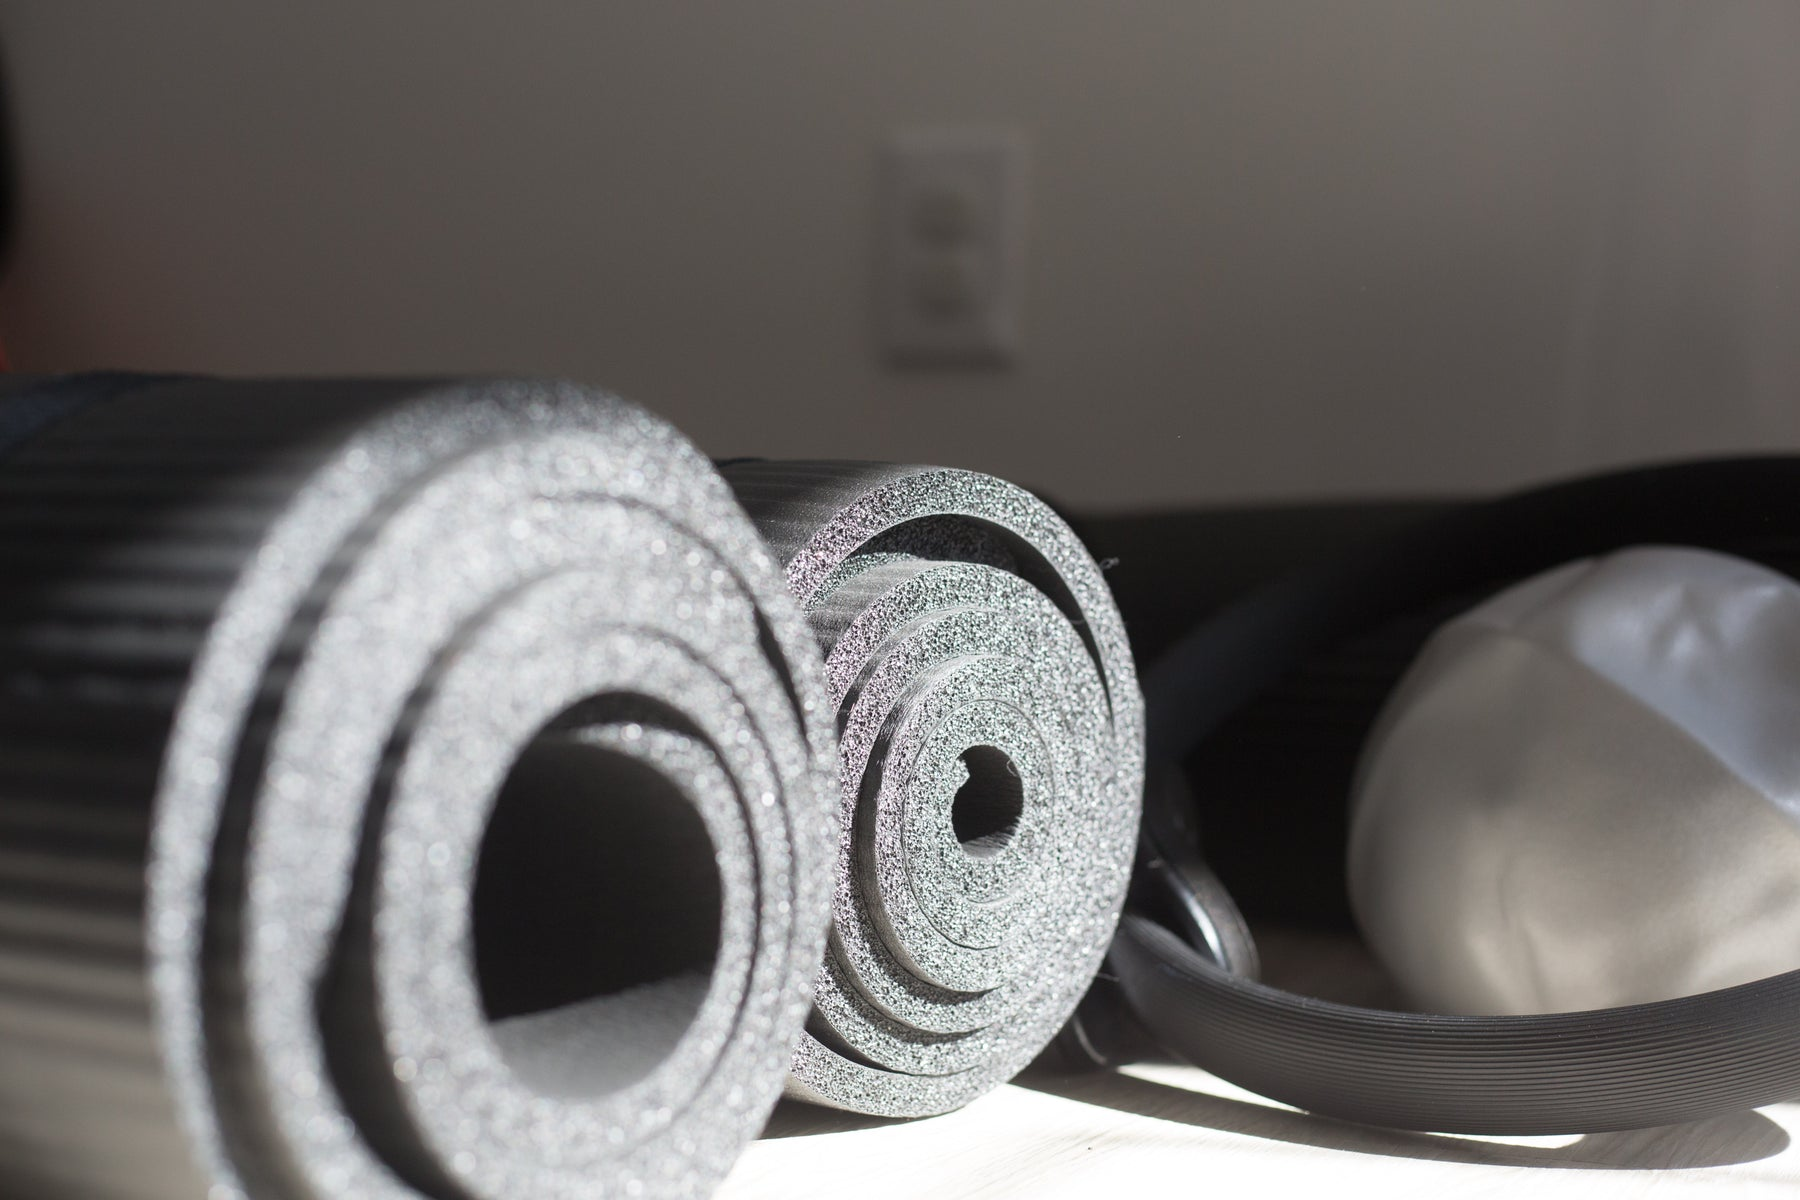 Close Up Photo of two black yoga mats next to a black Pilates Magic Circle and grey Pilates ball